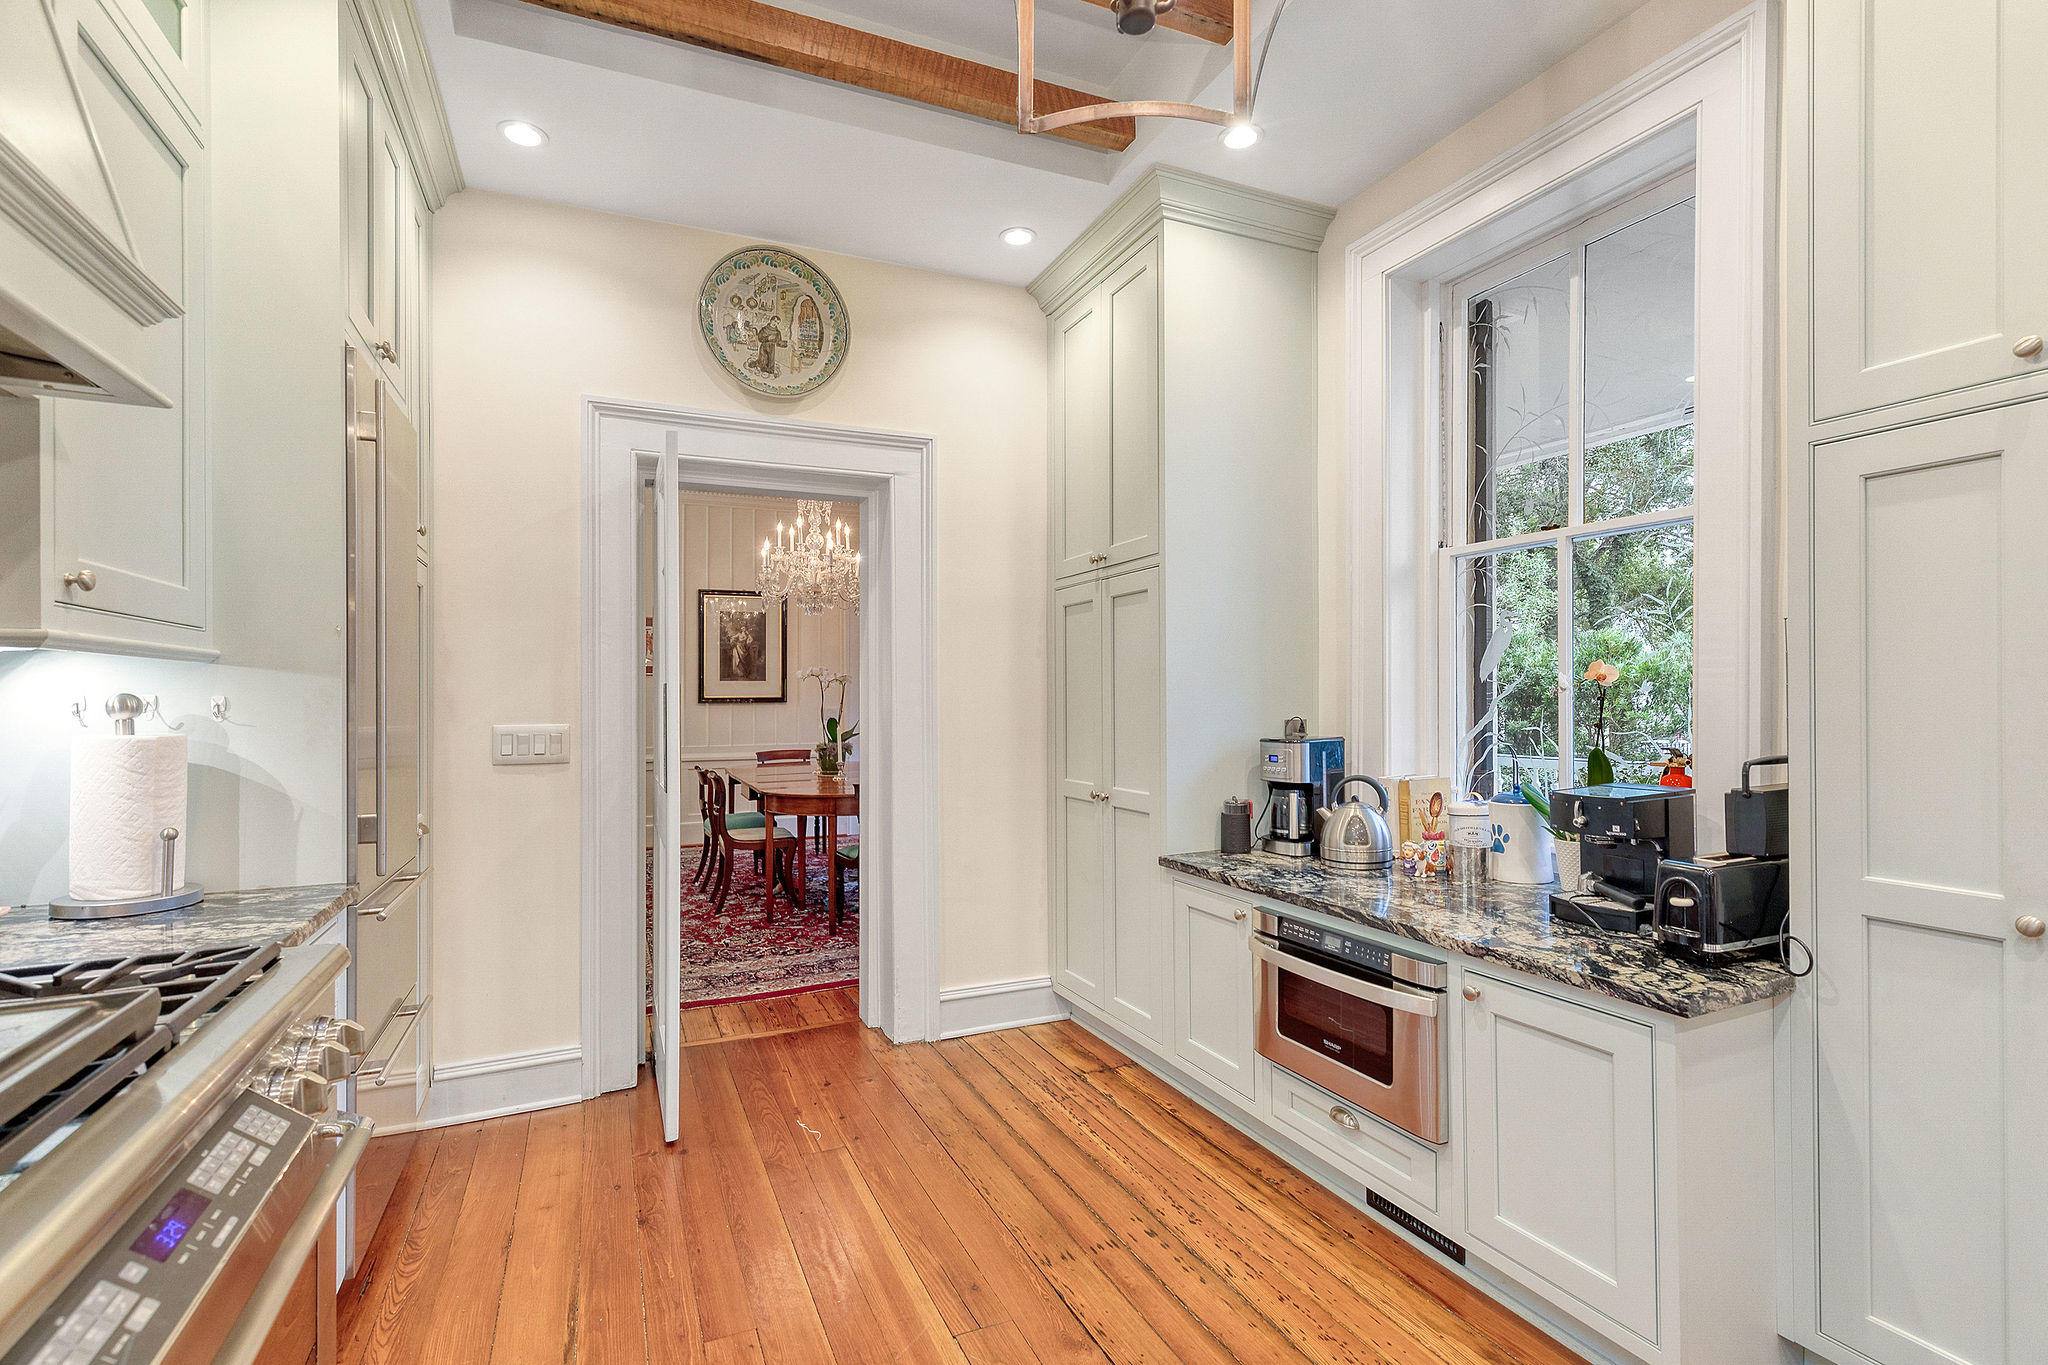 South of Broad Homes For Sale - 53 Church, Charleston, SC - 11